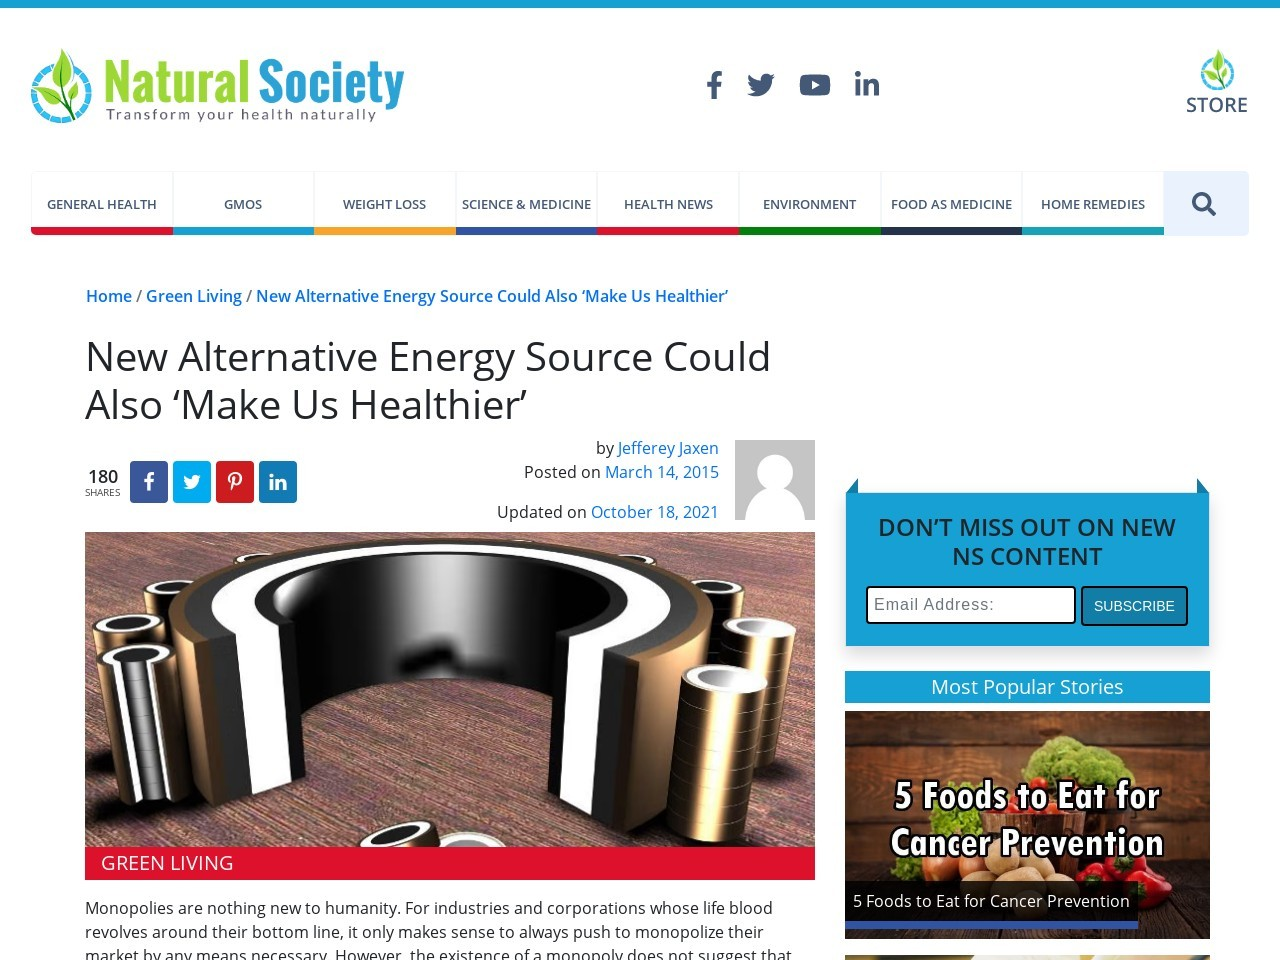 New Alternative Energy Source Could Also 'Make Us Healthier'